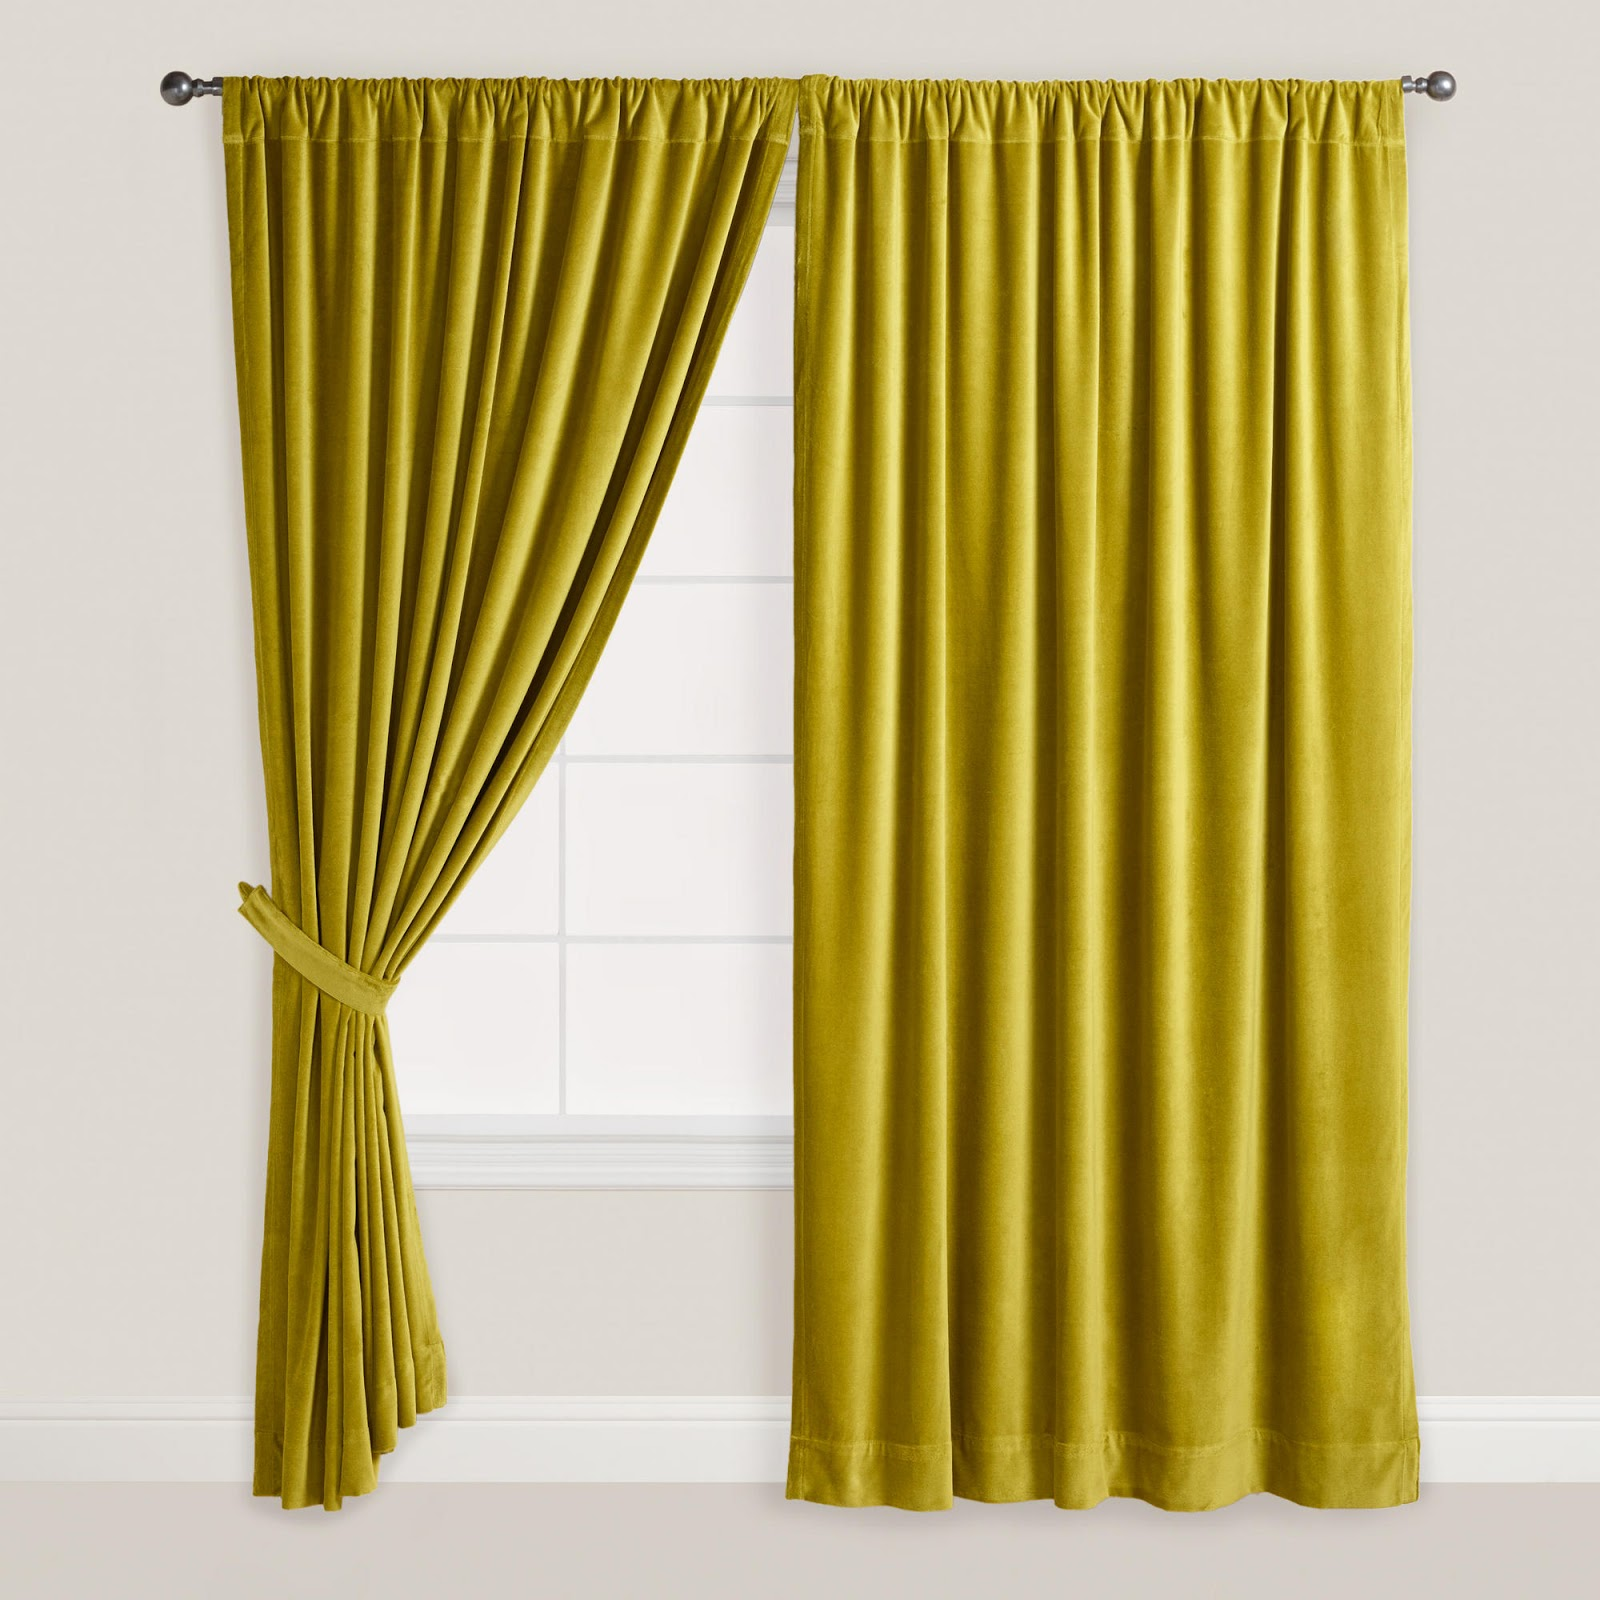 Bamboo Beaded Doorway Curtains Closet Door Curtain Beads